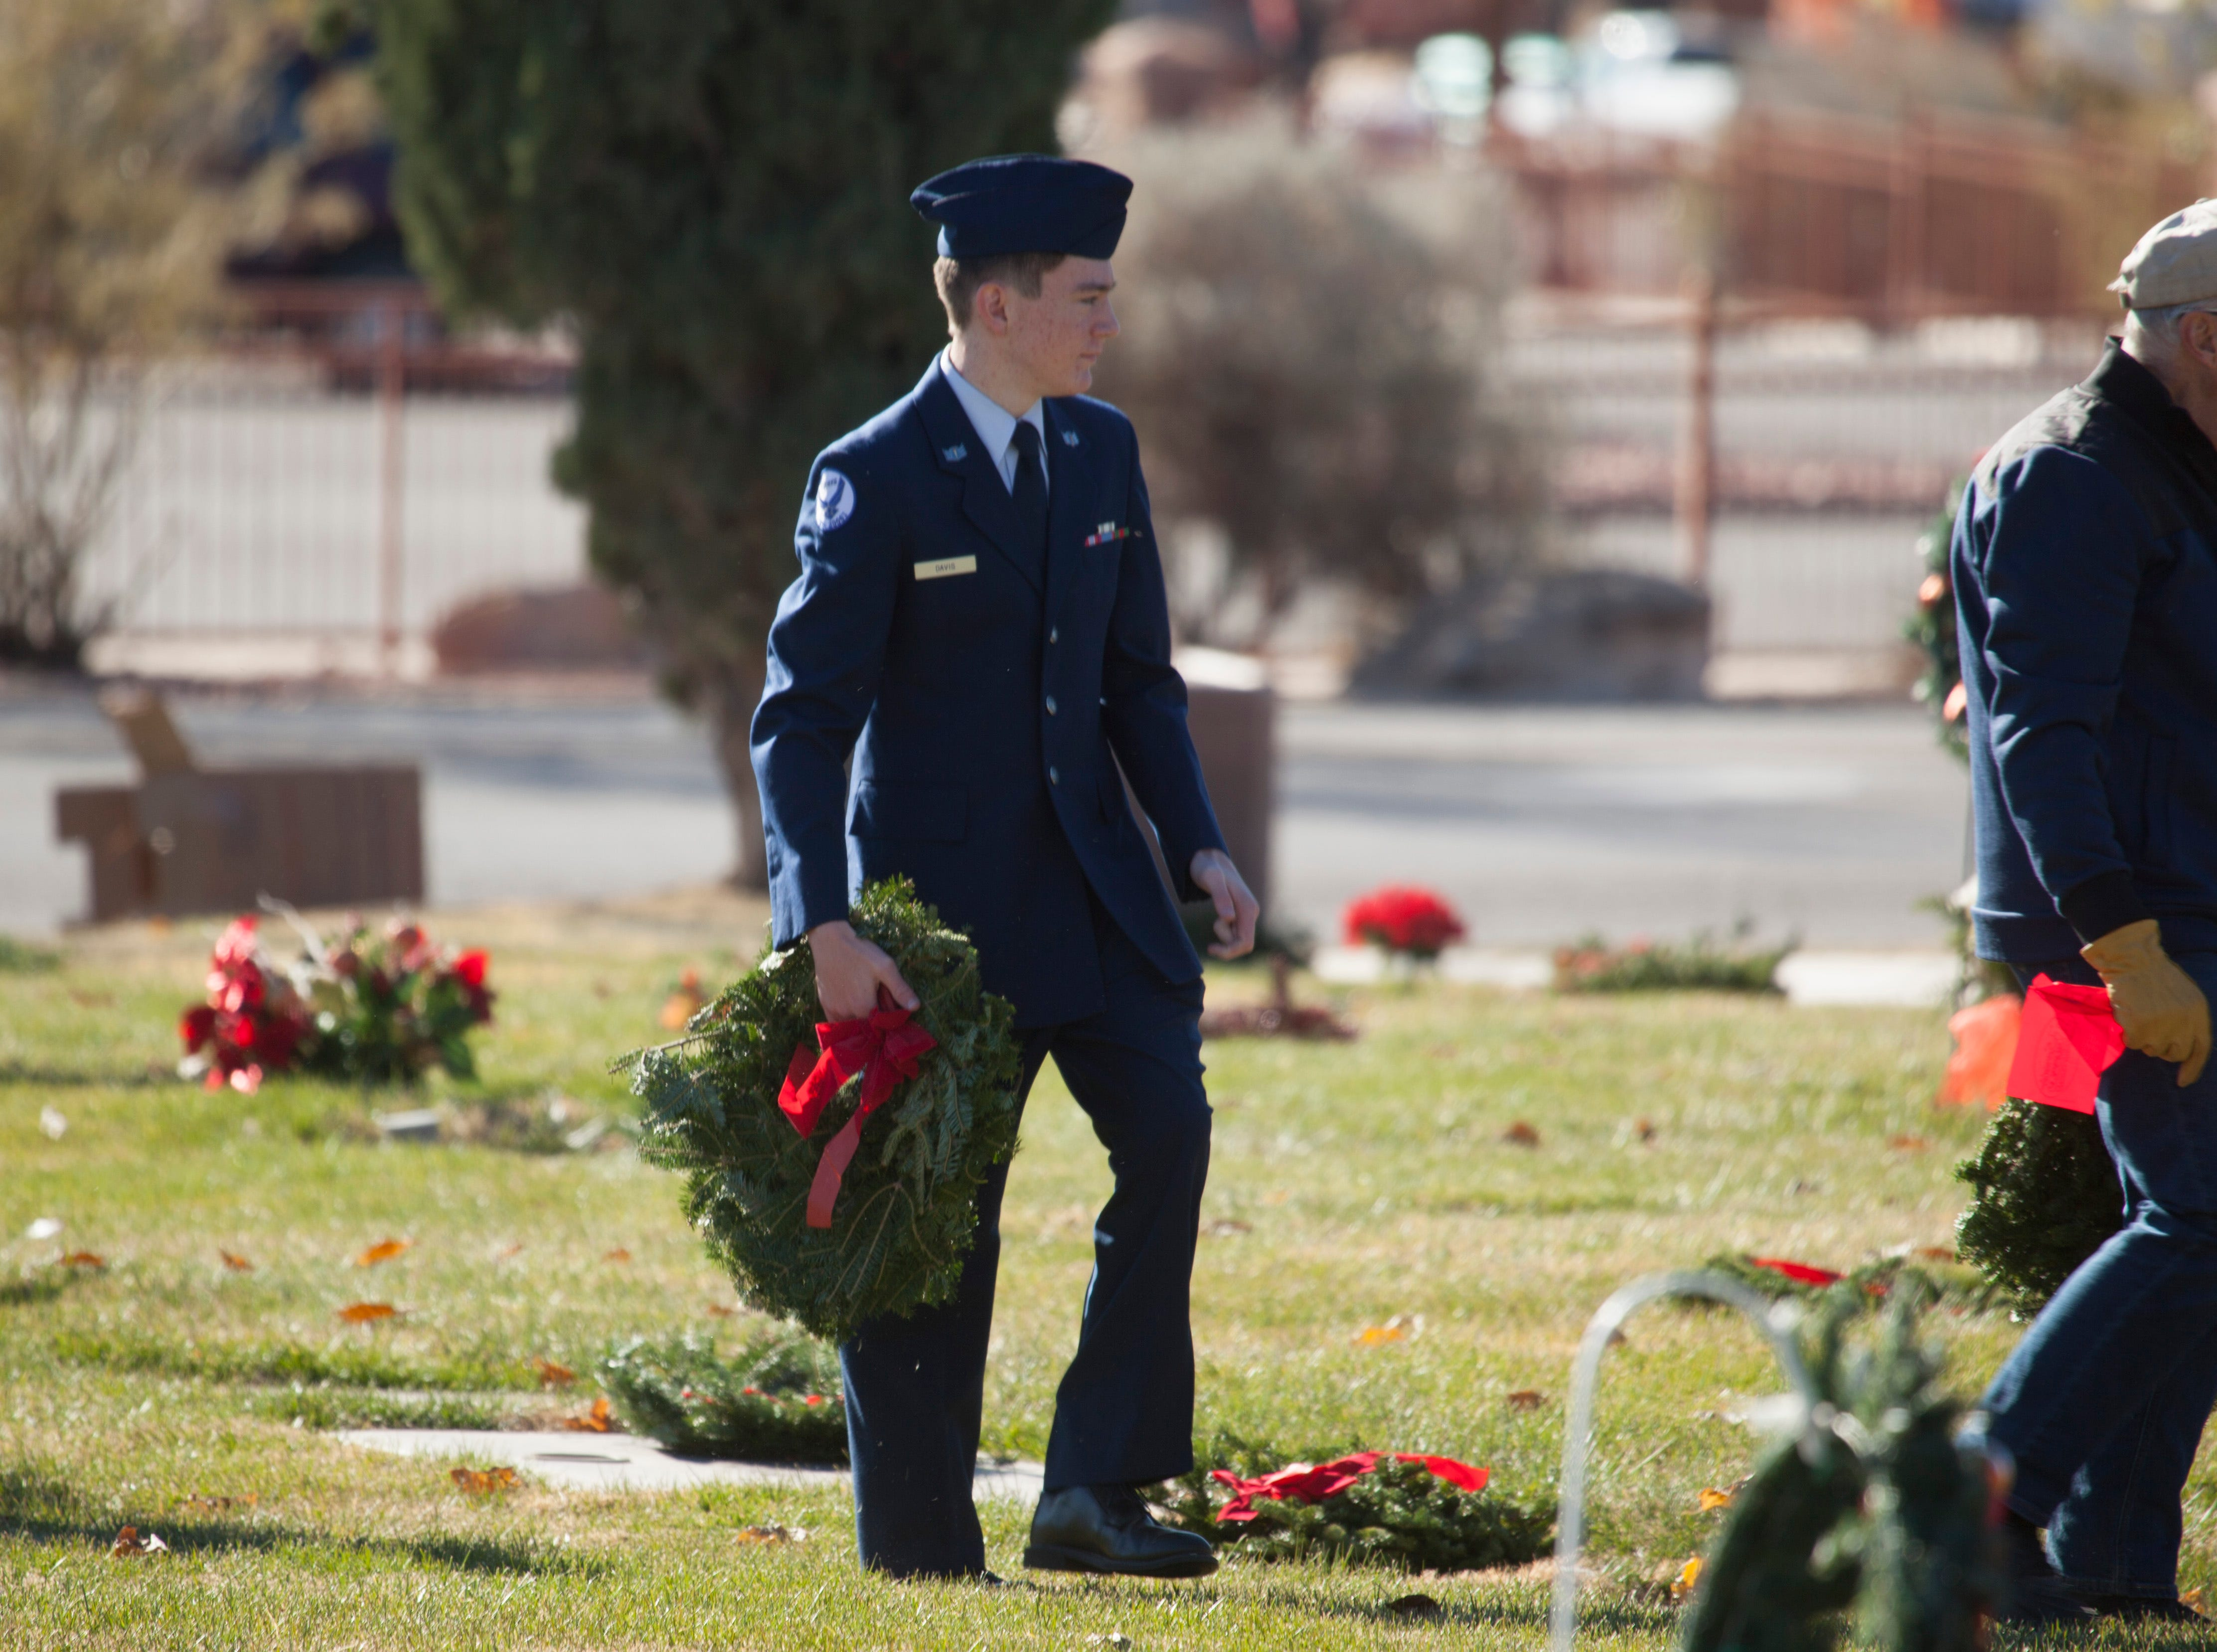 Community members place wreaths on the headstones of veterans at the St. George Cemetery as part of the Wreaths Across America Saturday, Dec. 15, 2018.